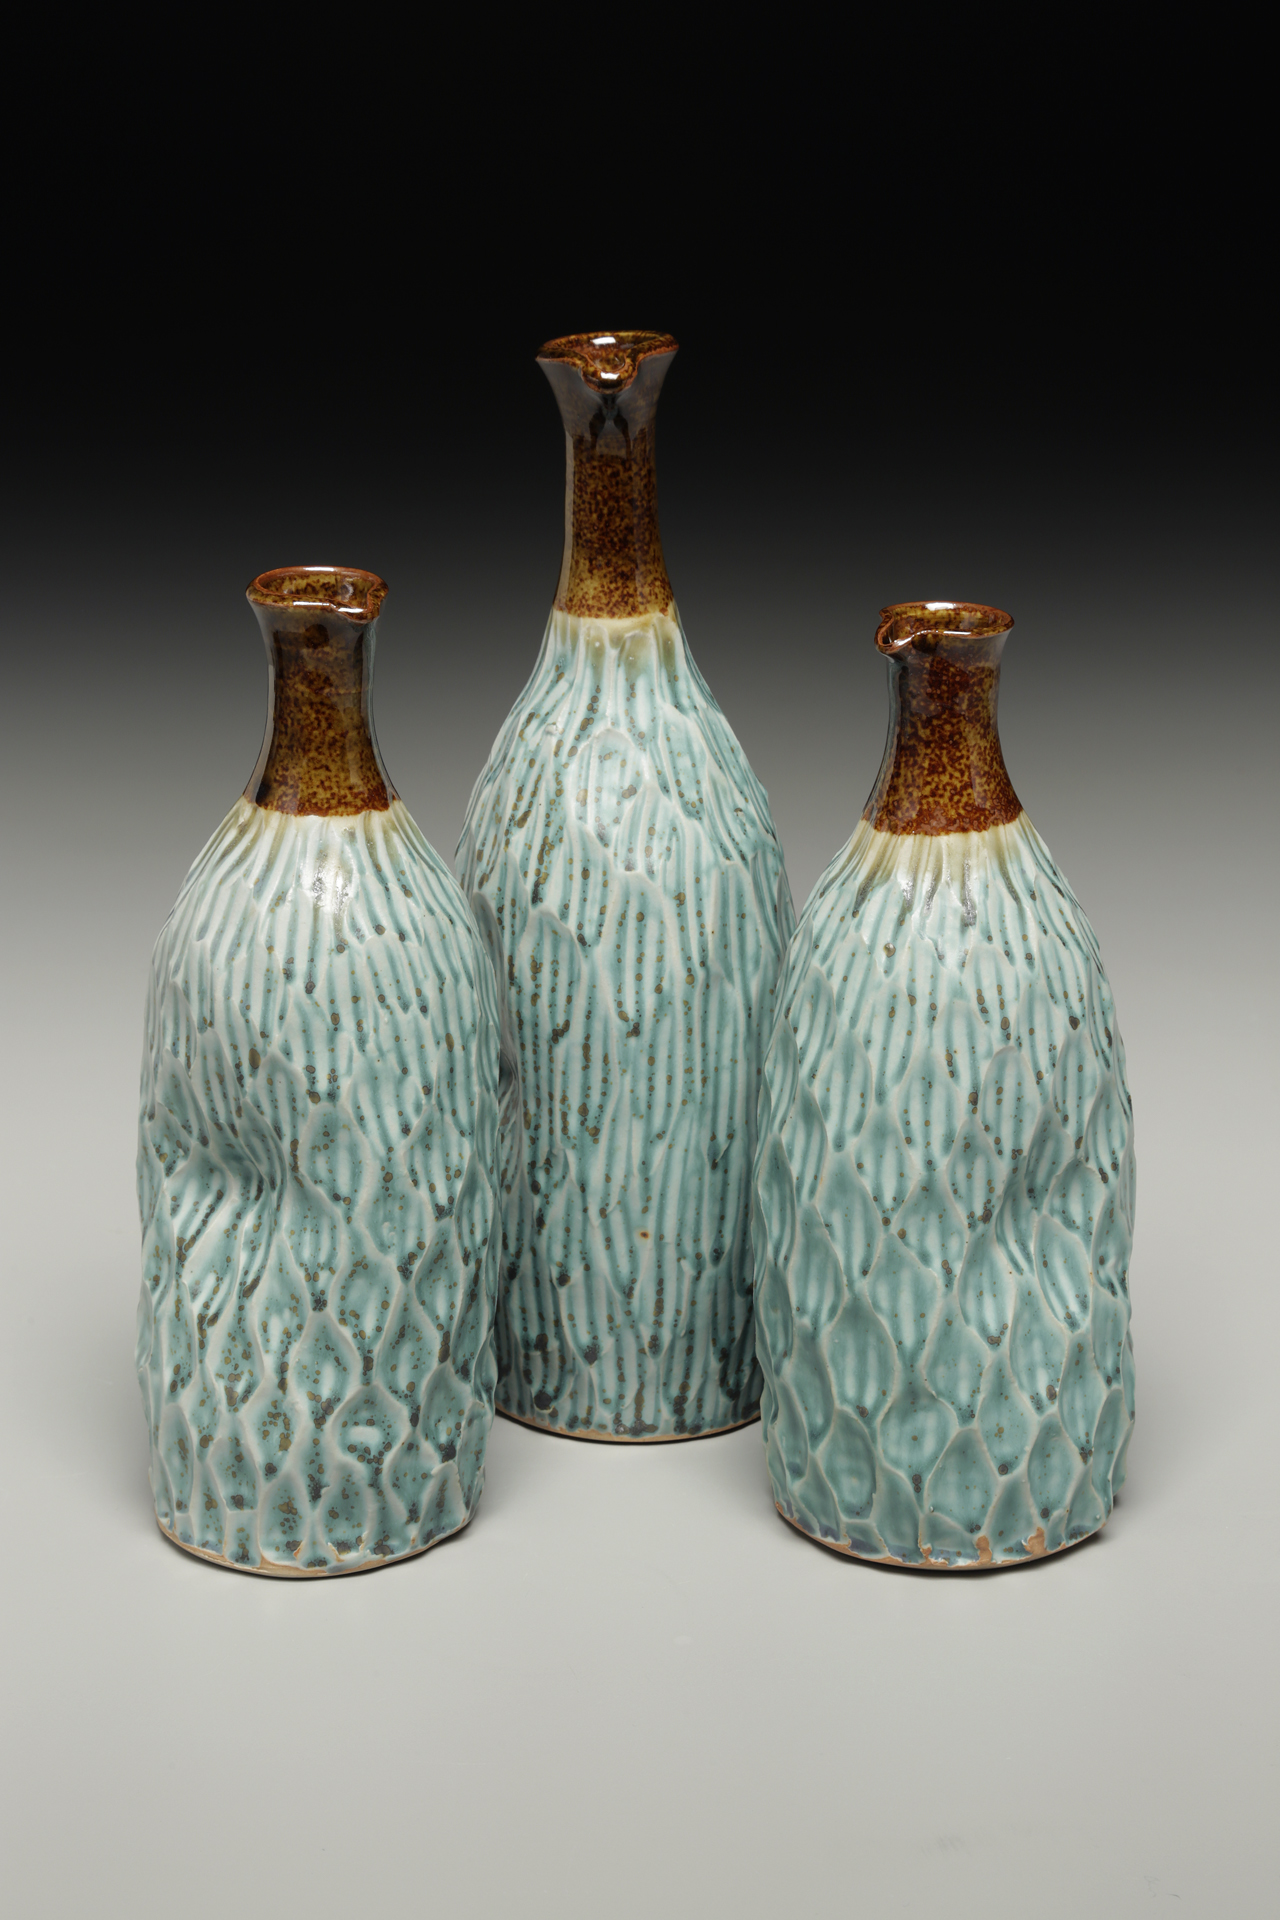 Faceted Oil Bottles, Lori Theriault